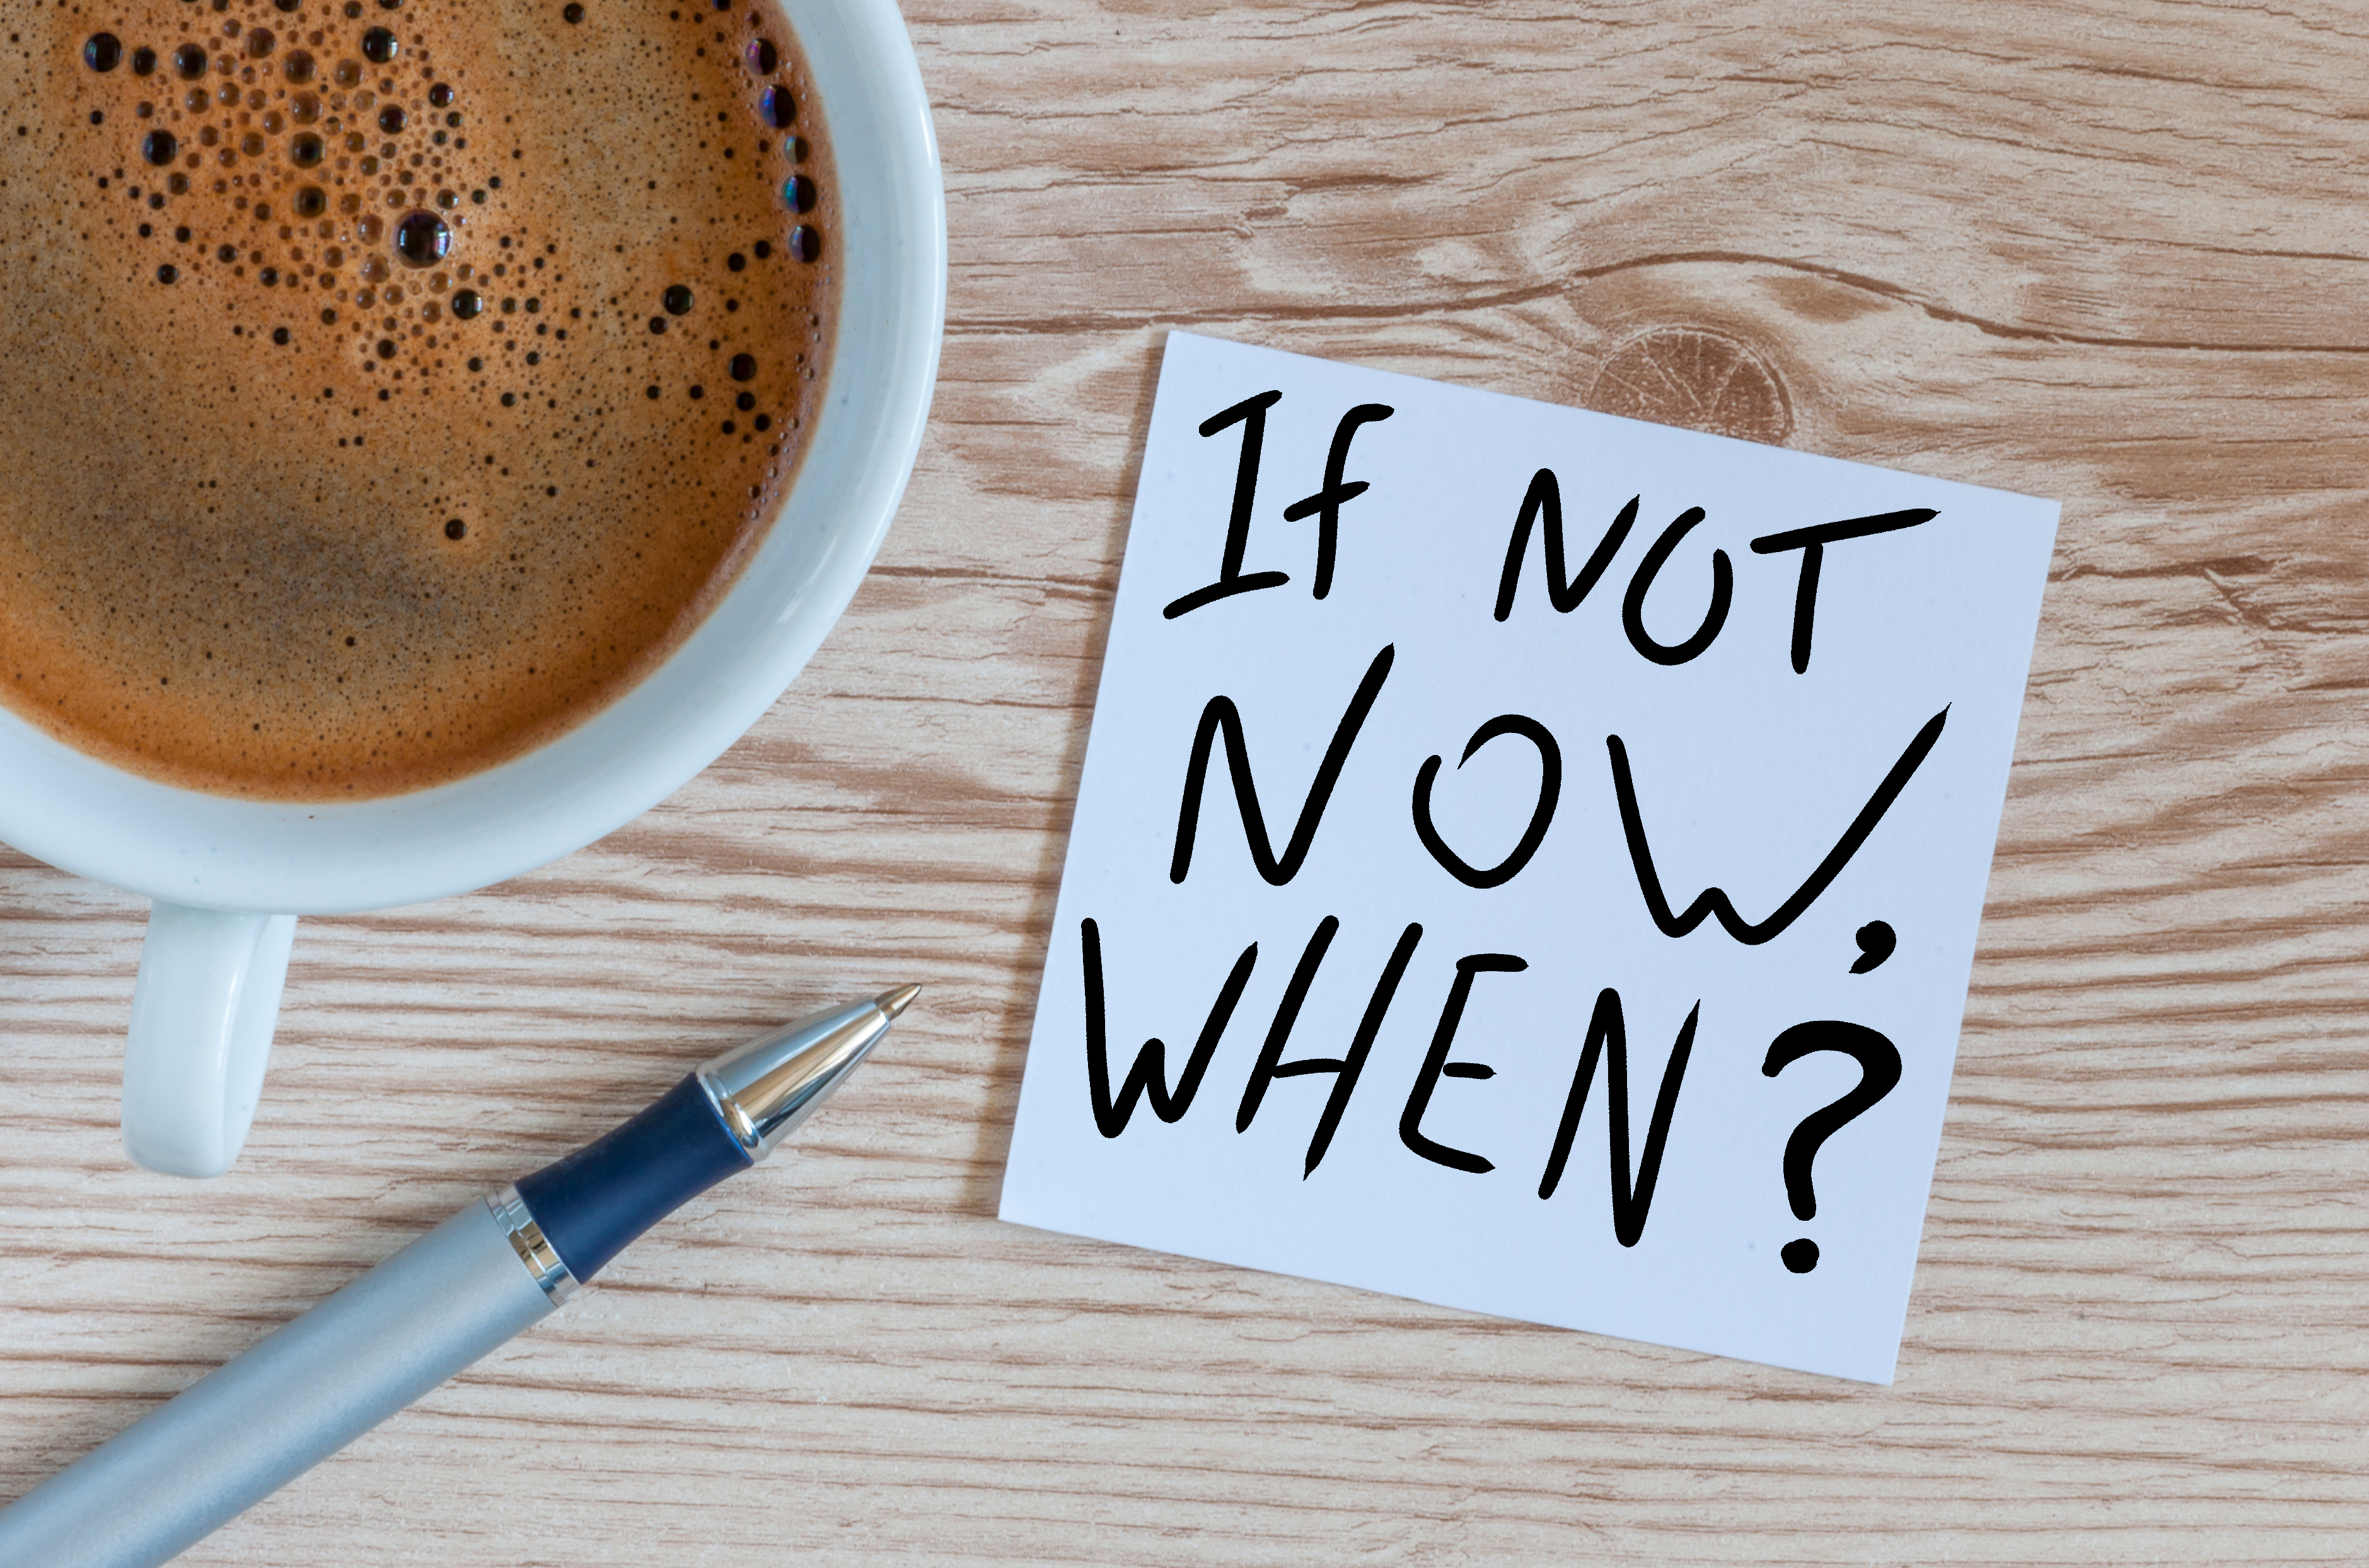 If not now, when? message image